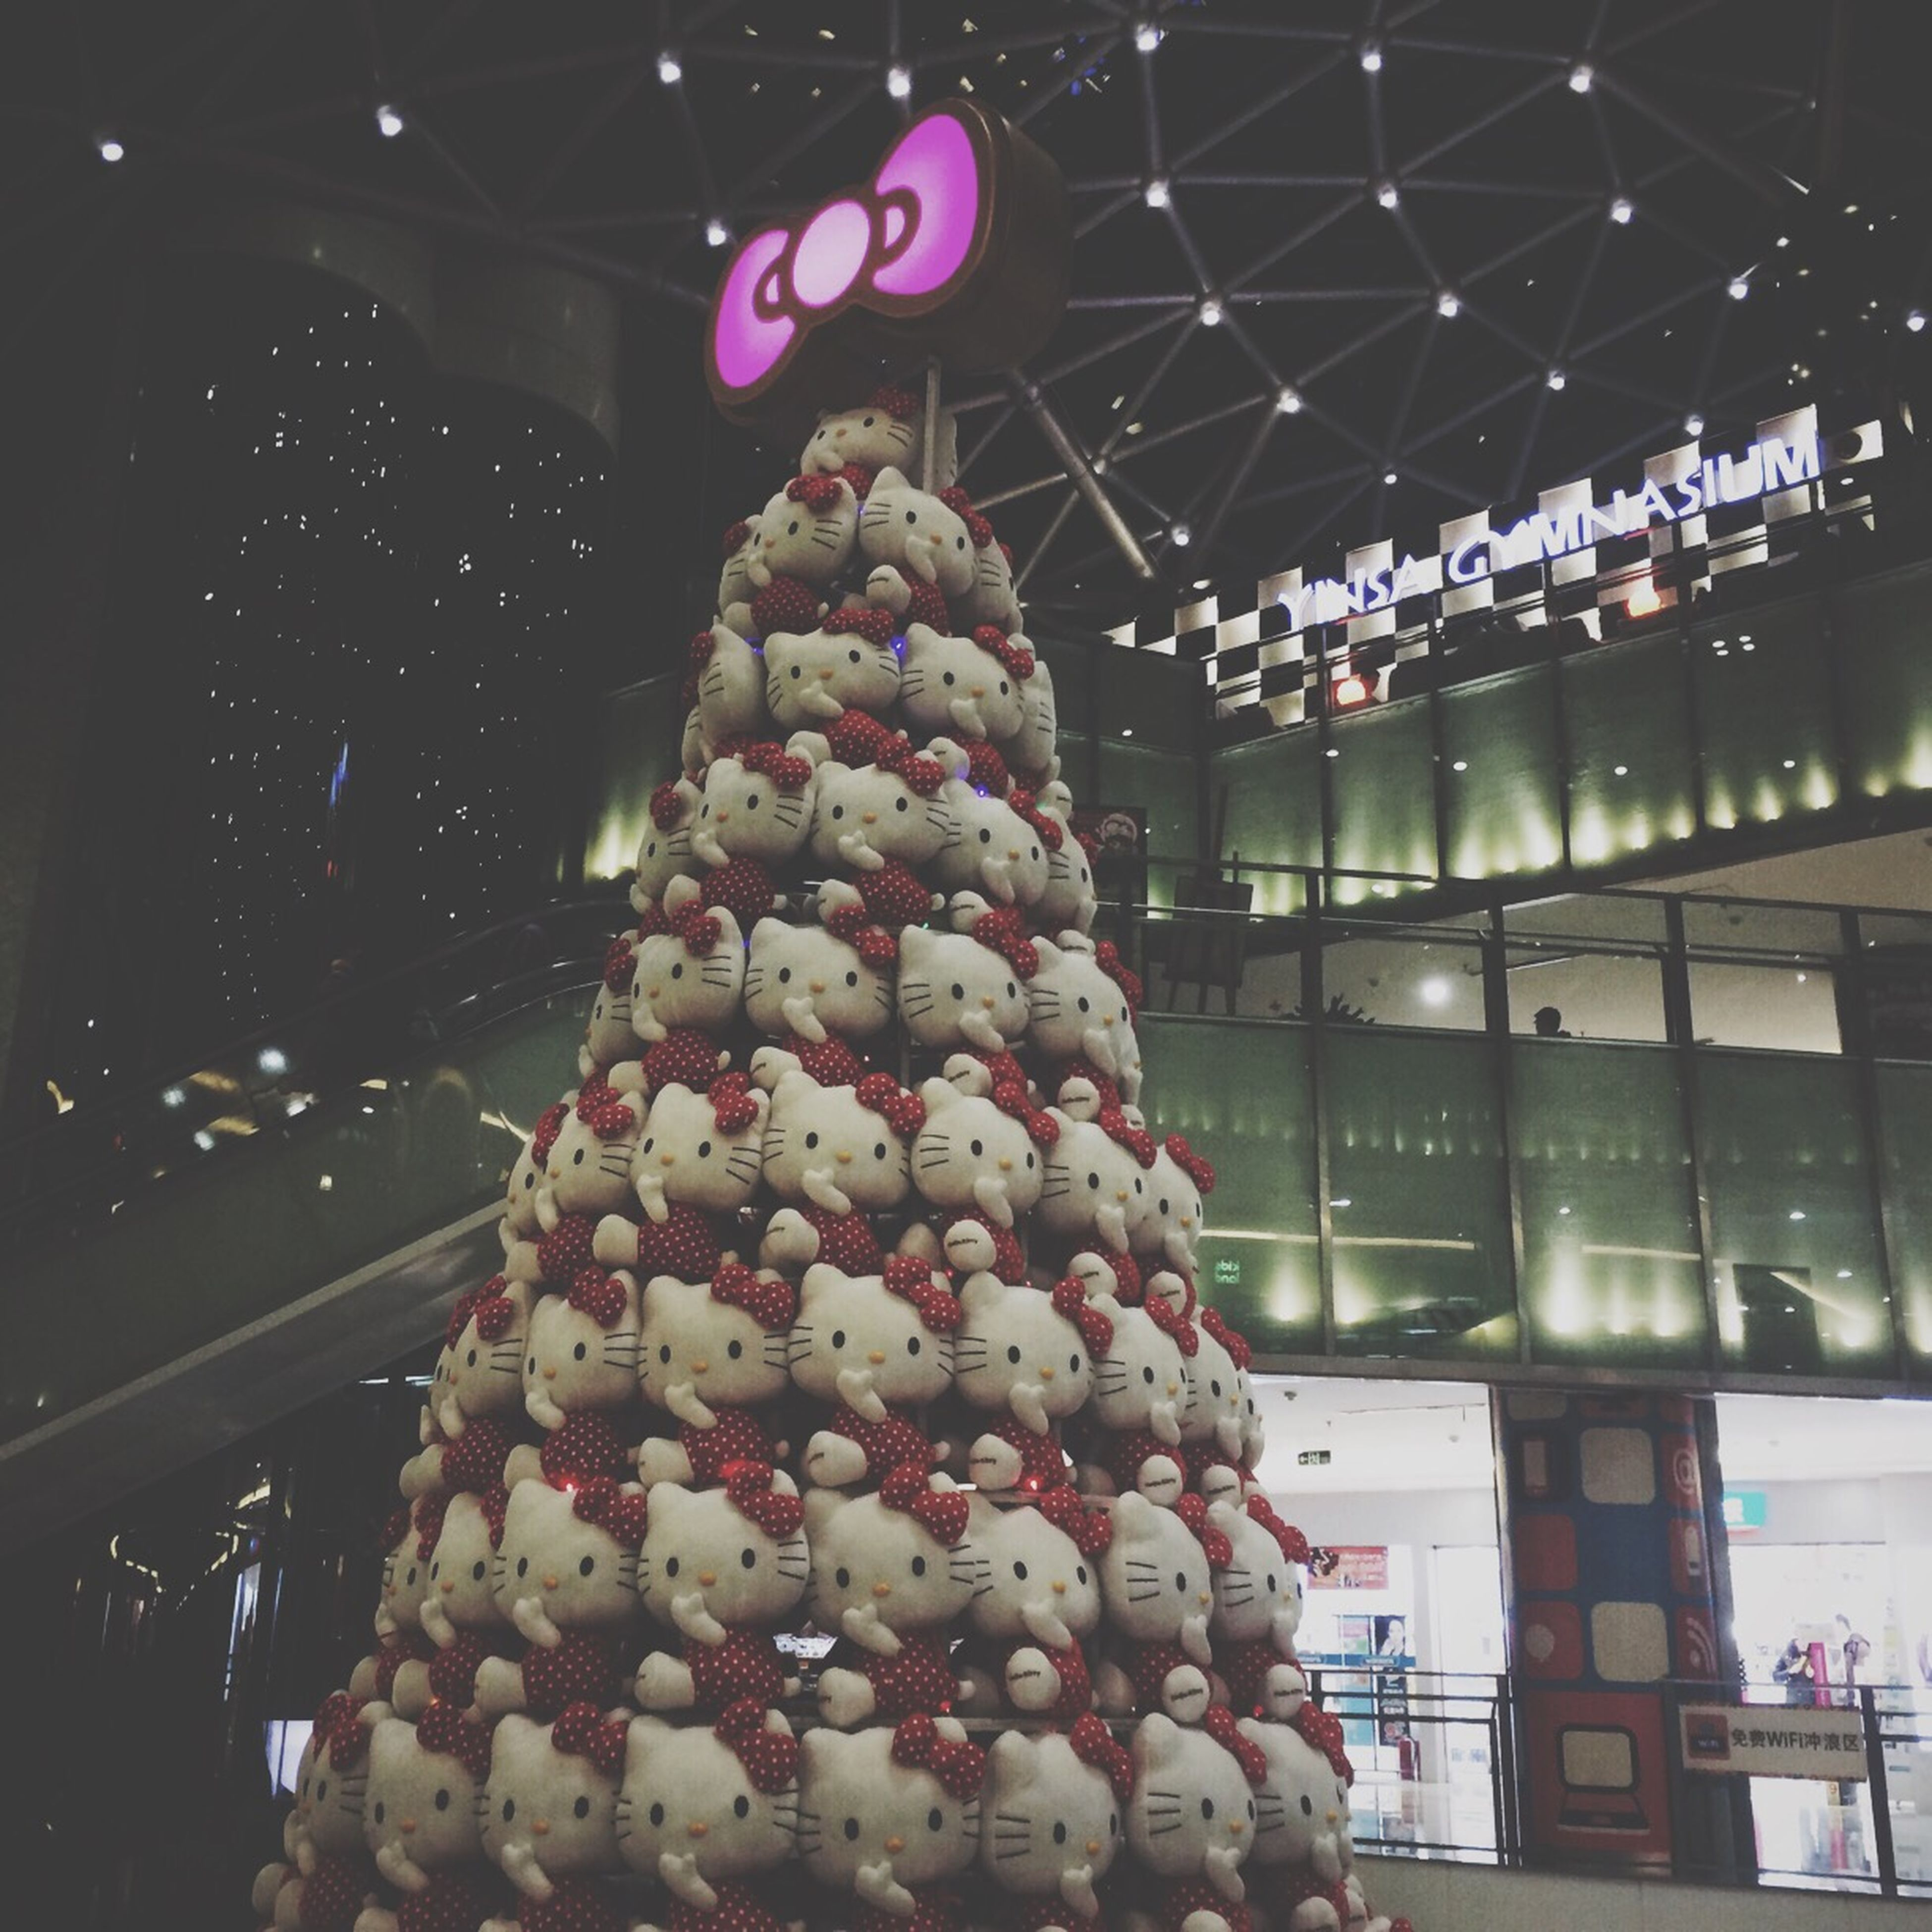 food and drink, food, freshness, sweet food, indoors, night, dessert, decoration, illuminated, celebration, unhealthy eating, hanging, glass - material, ready-to-eat, christmas, low angle view, indulgence, architecture, no people, close-up